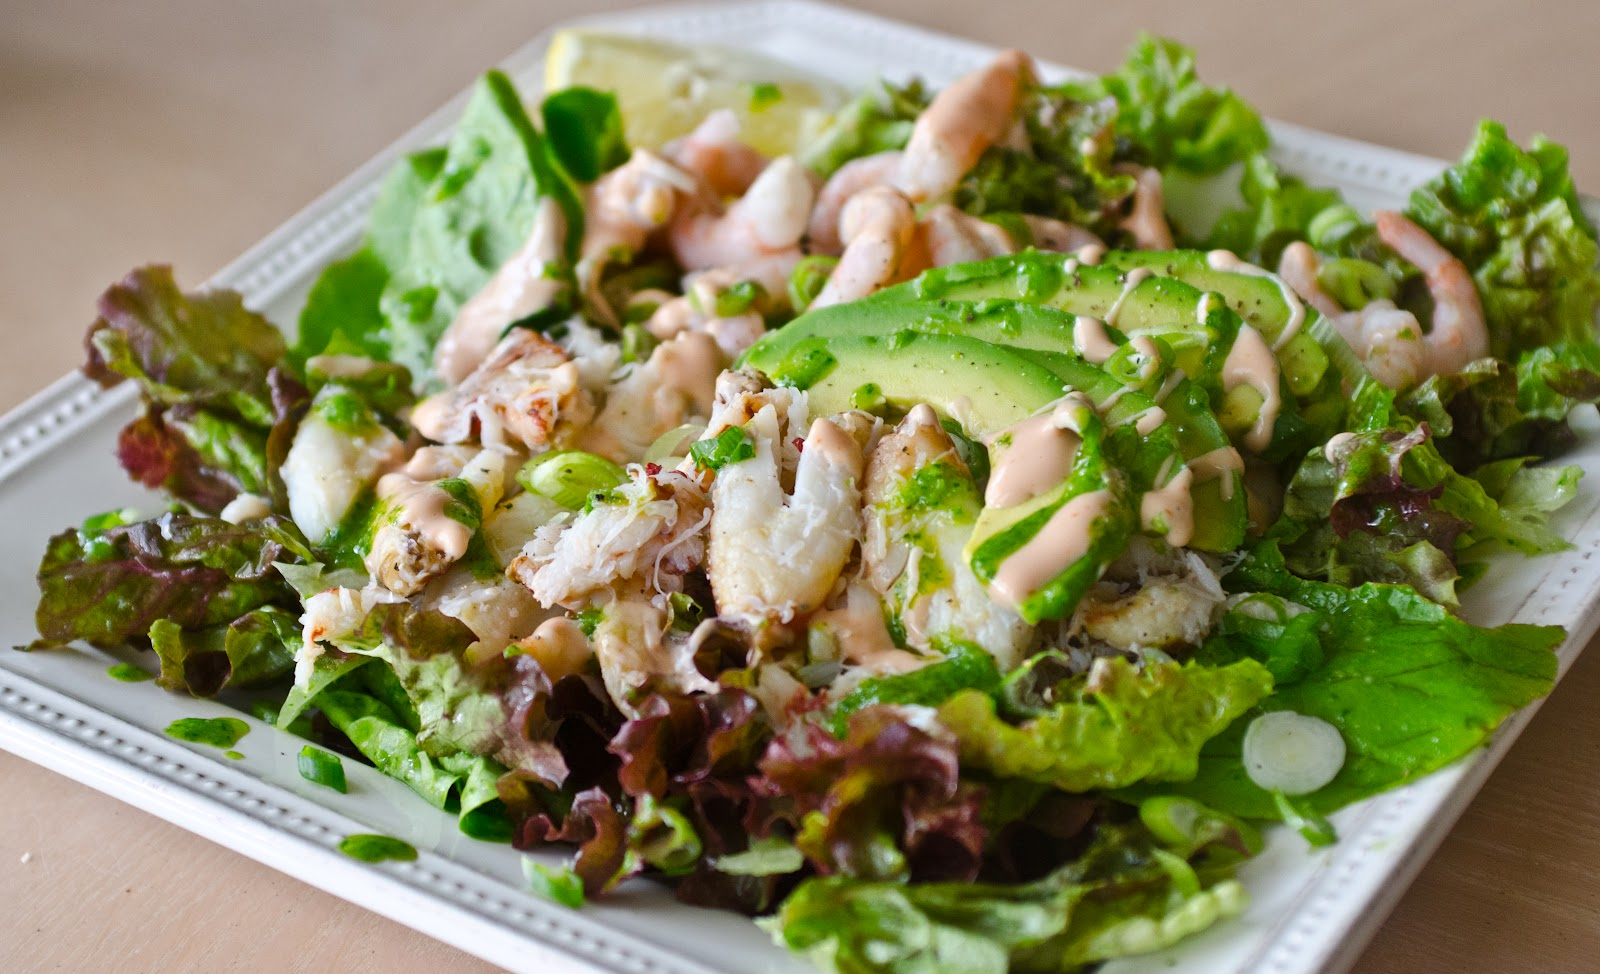 Navy Blue Kitchen: Dungeness Crab and Shrimp Salad with Avocado